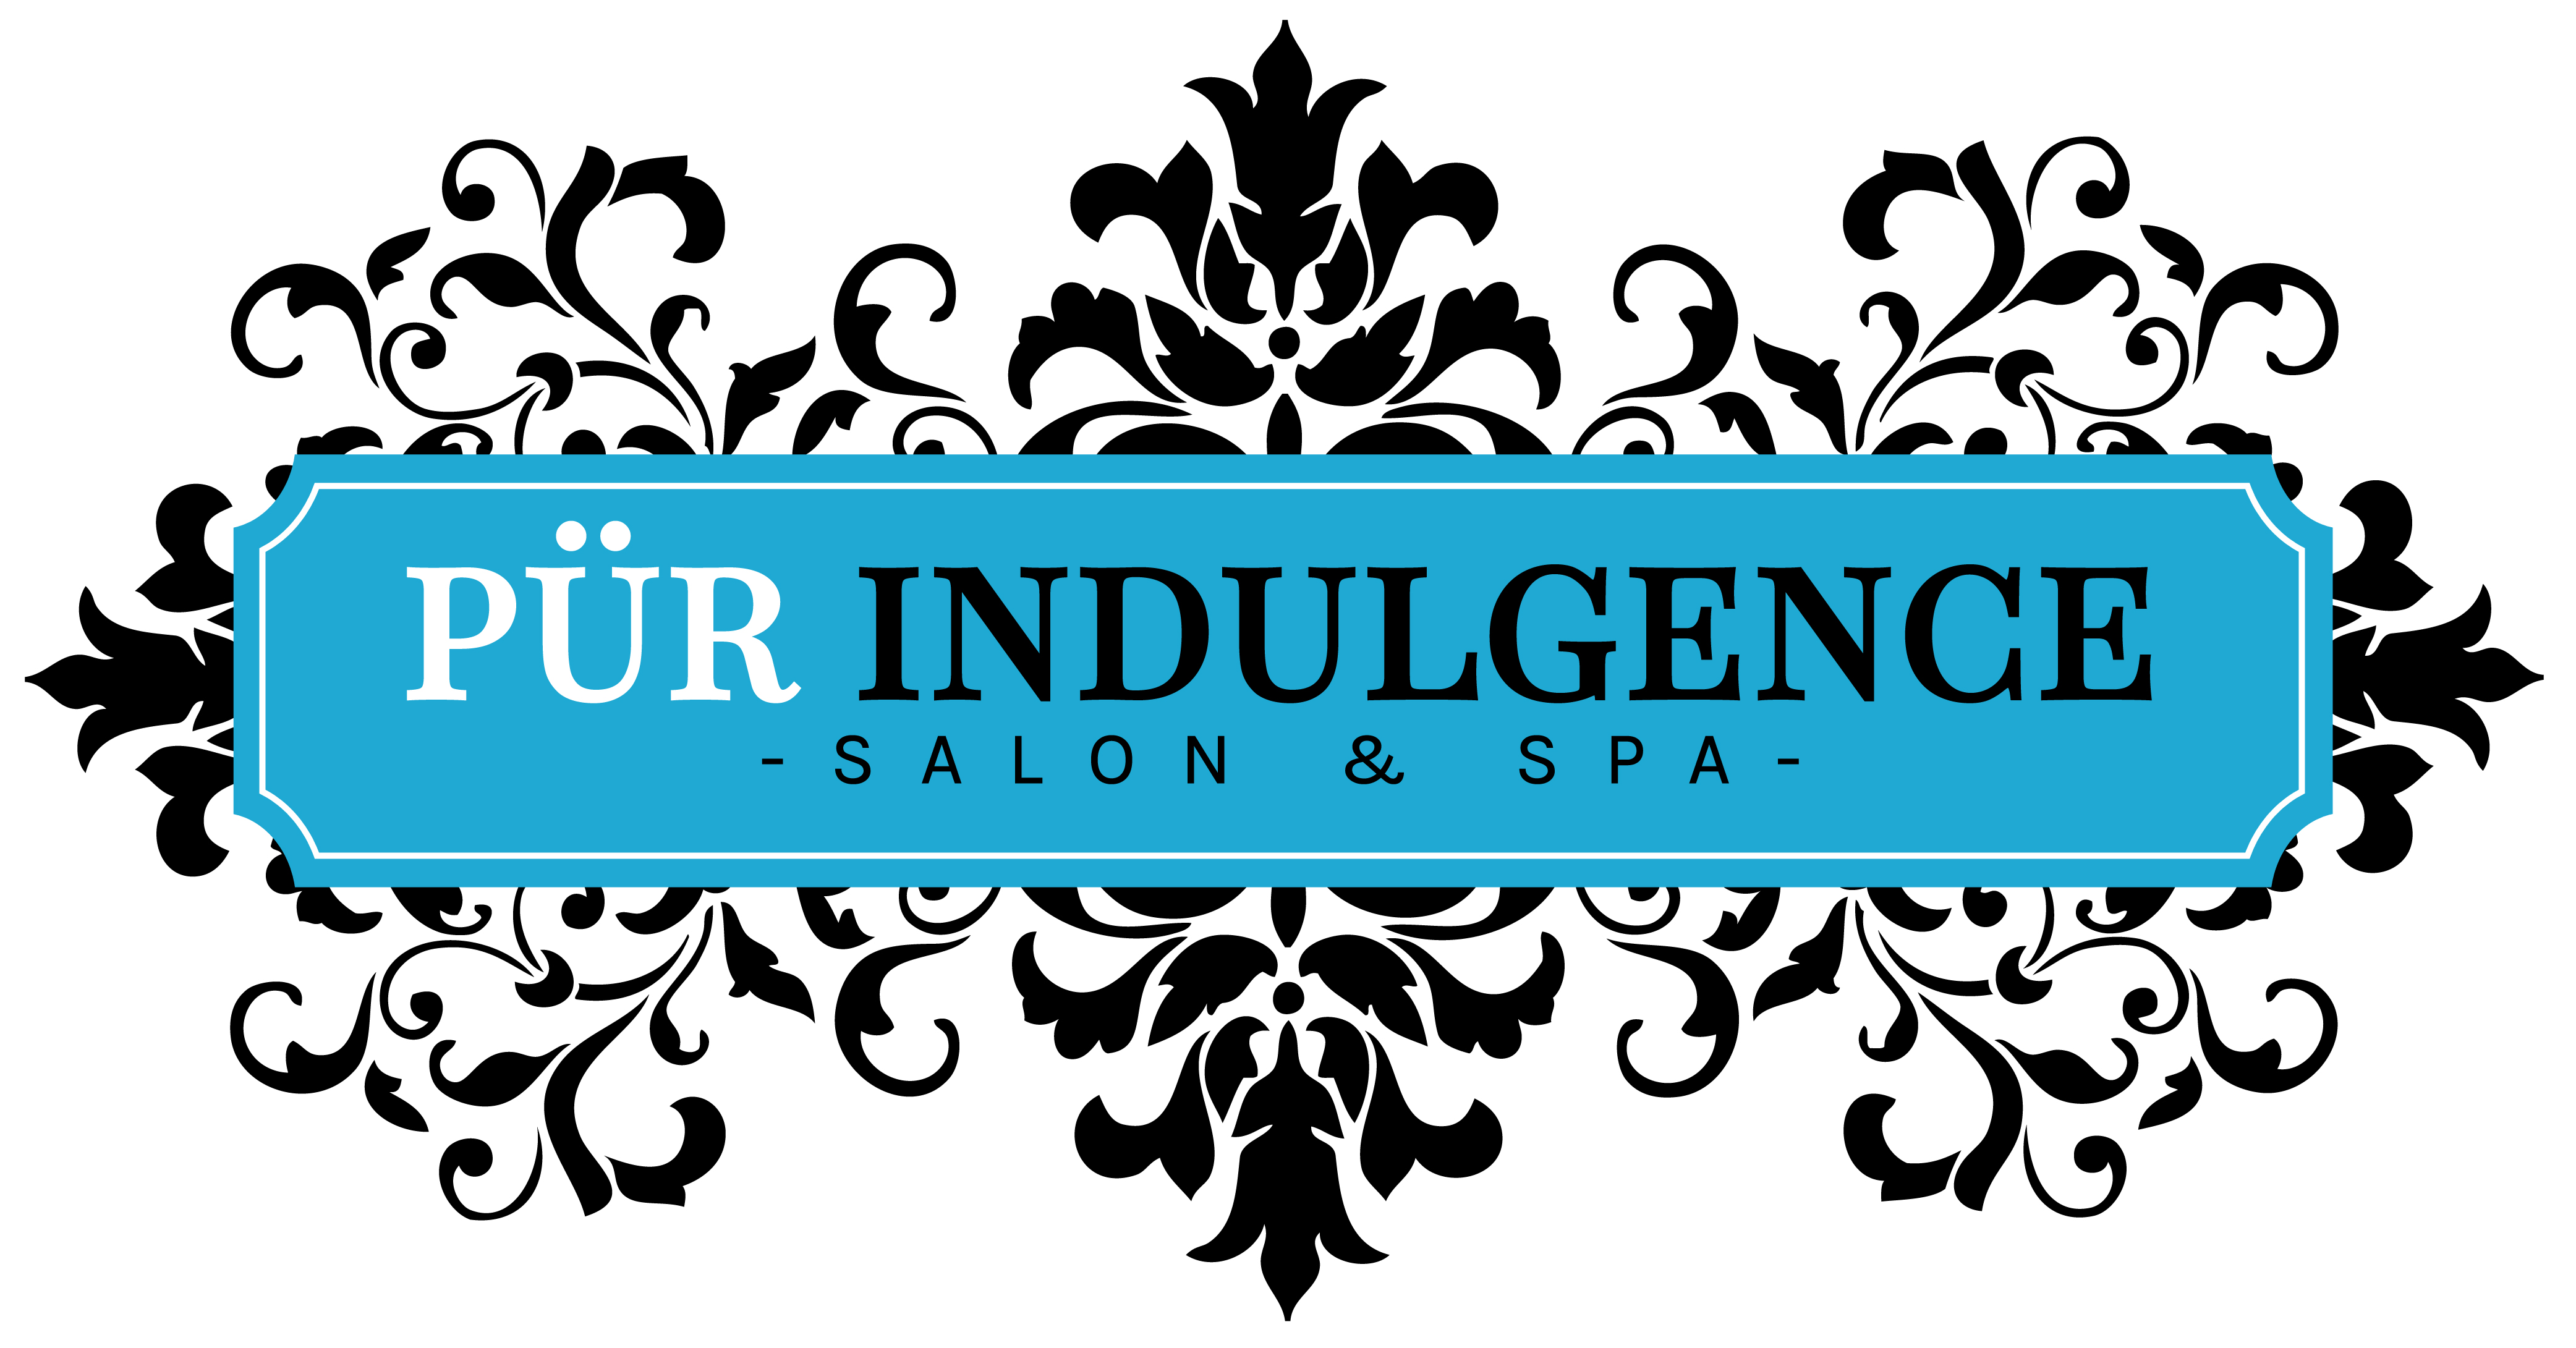 Pur Indulgence Salon & Spa logo